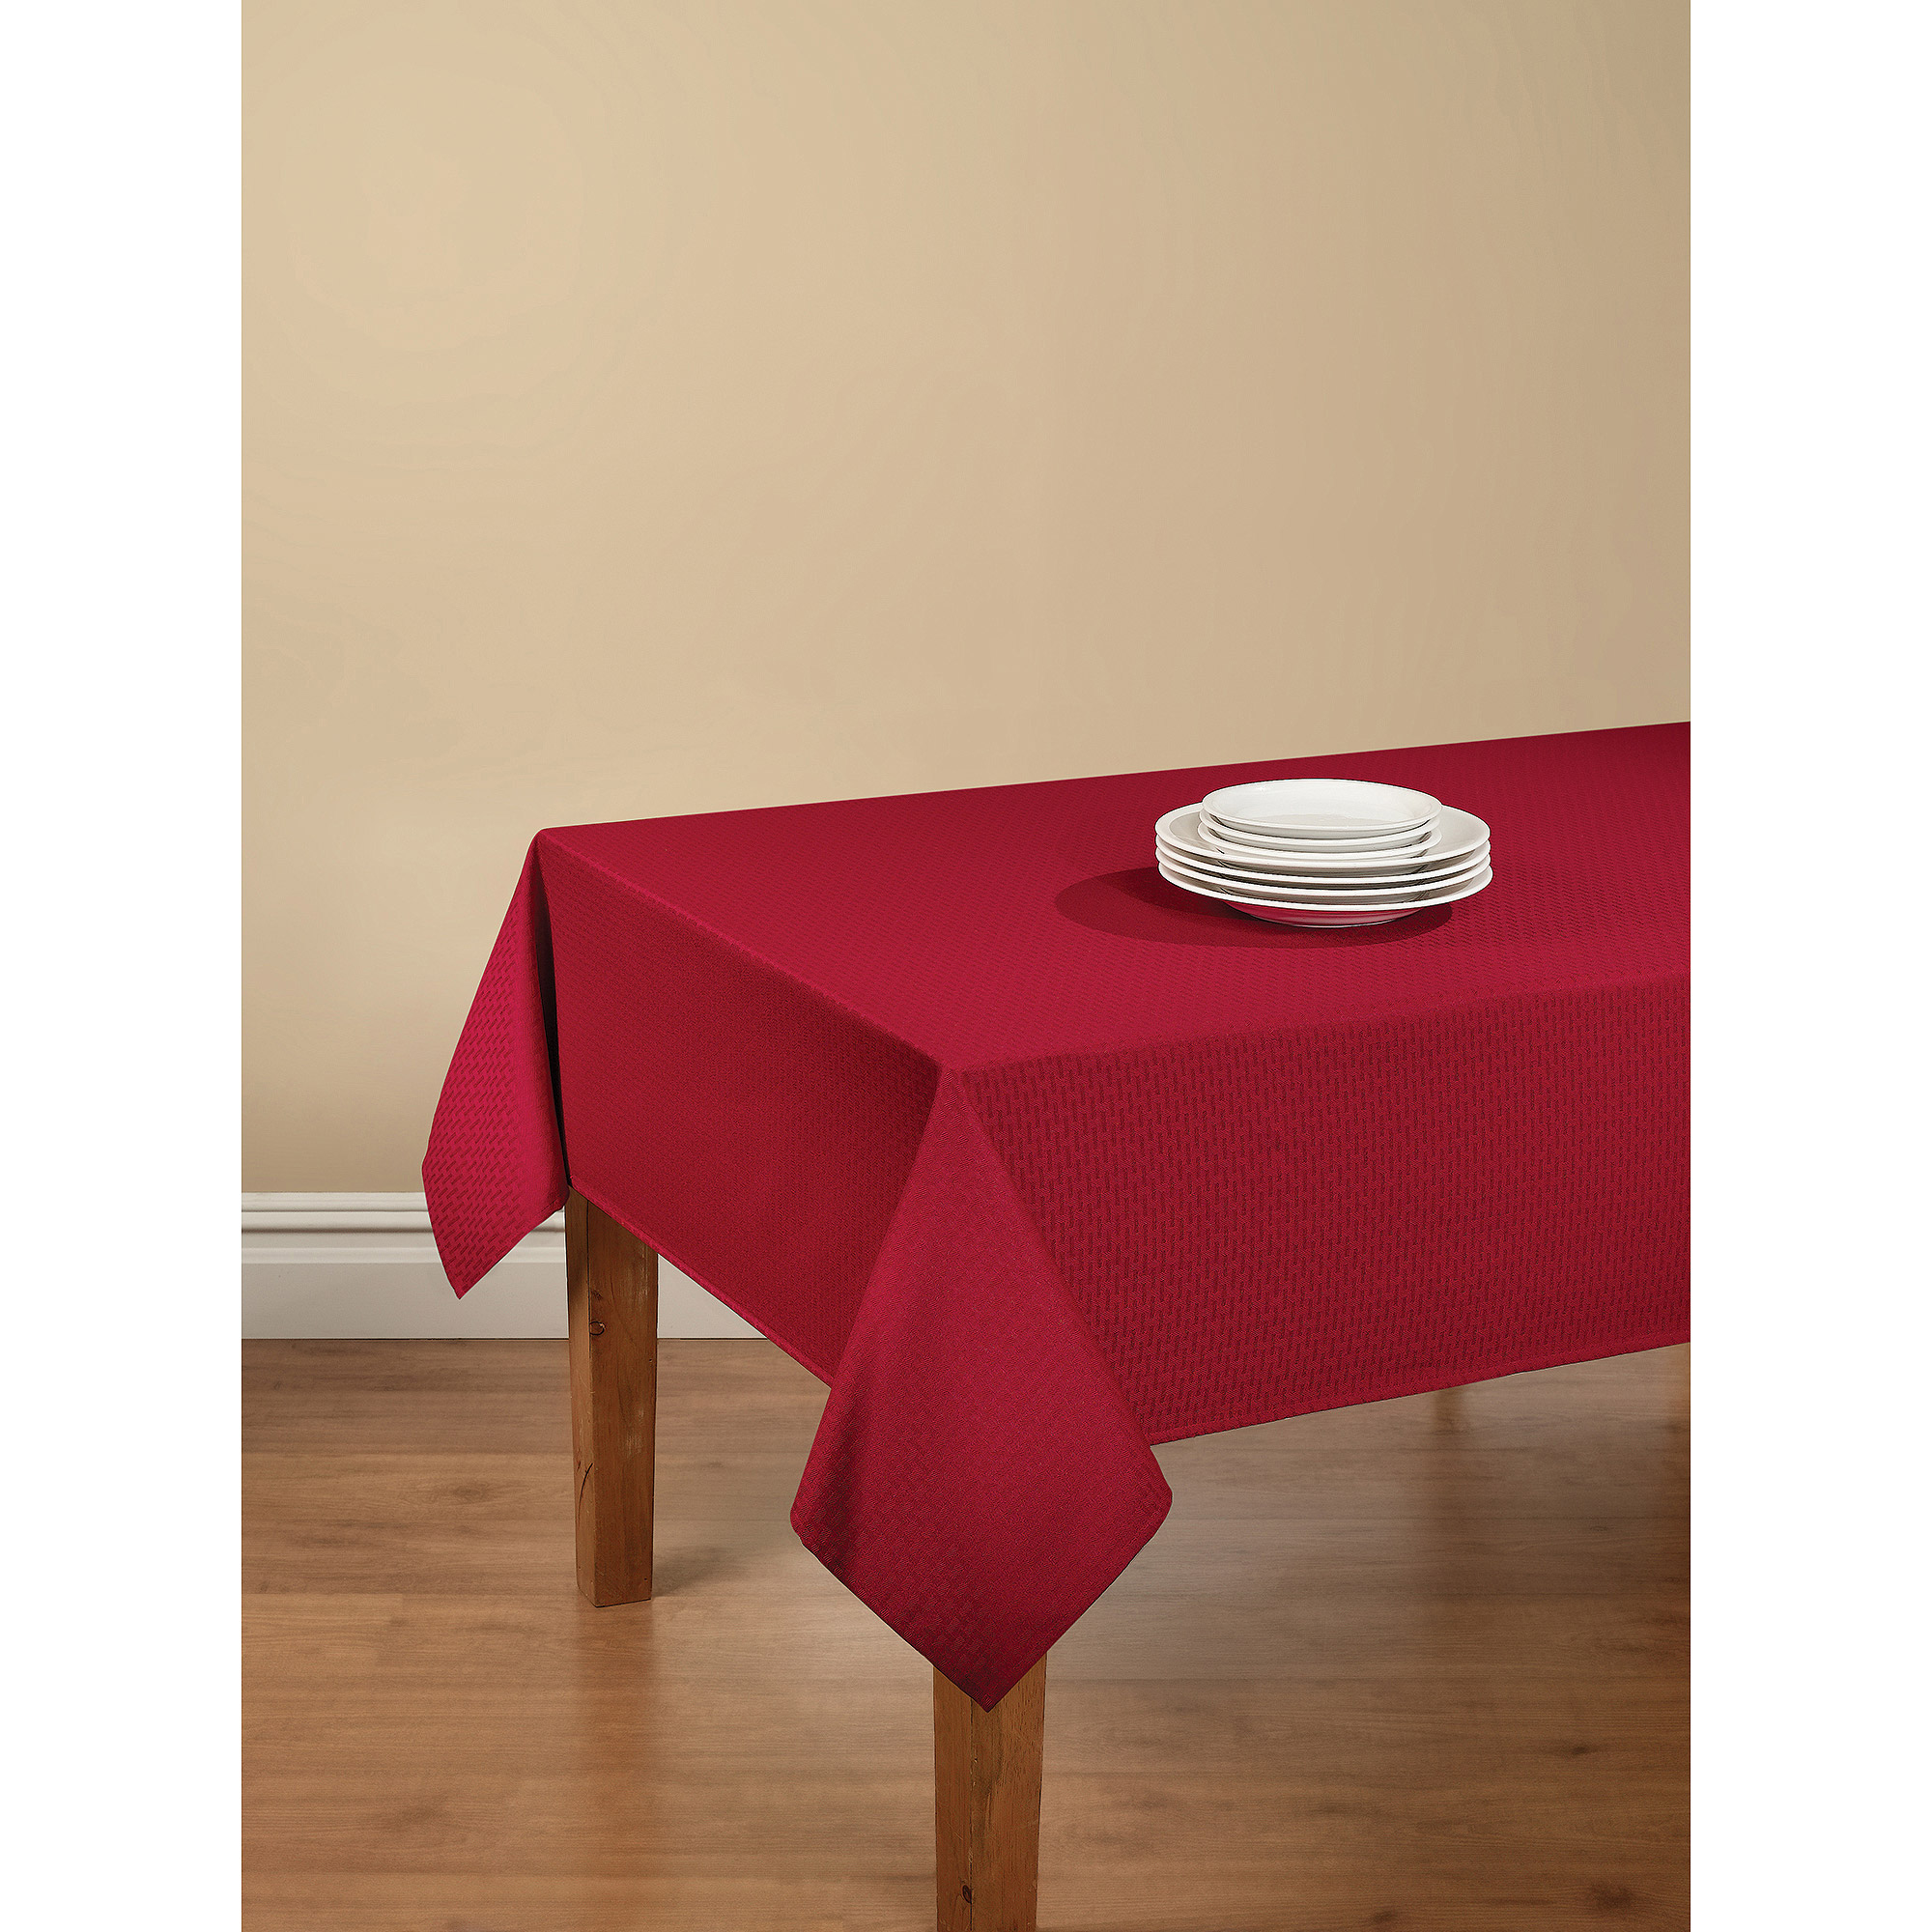 Target Vinyl Tablecloth | Red Checkered Vinyl Tablecloths | Vinyl Tablecloths